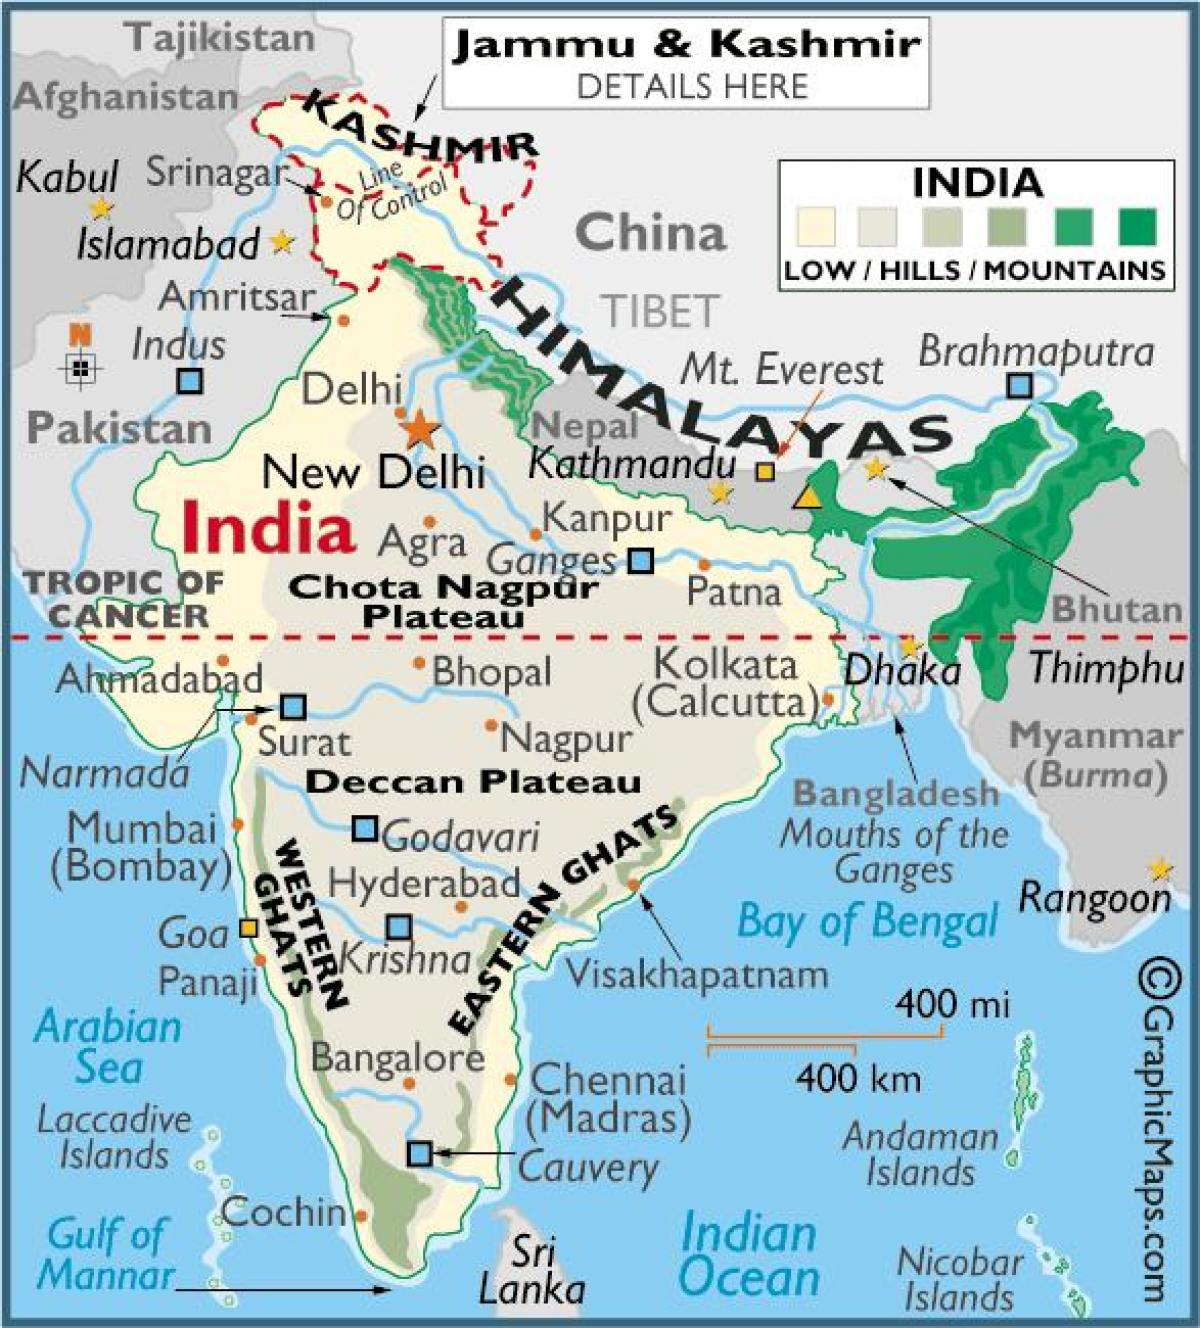 Mountains And Surrounding Countries Map Of India on map of india now, map of the country of india, map of africa, map of china and bordering countries, map of india and sri lanka, world map with countries, map of japan and neighboring countries, map of nepal and tibet, map of austria with surrounding countries, map of asia, map of iran and neighboring countries, map of india and tibet, map of ancient india, map of india with cities, map of malaysia and singapore, map of india and saudi arabia, map of countries surrounding china, map of india and singapore, map of india states, map of india and mountains,